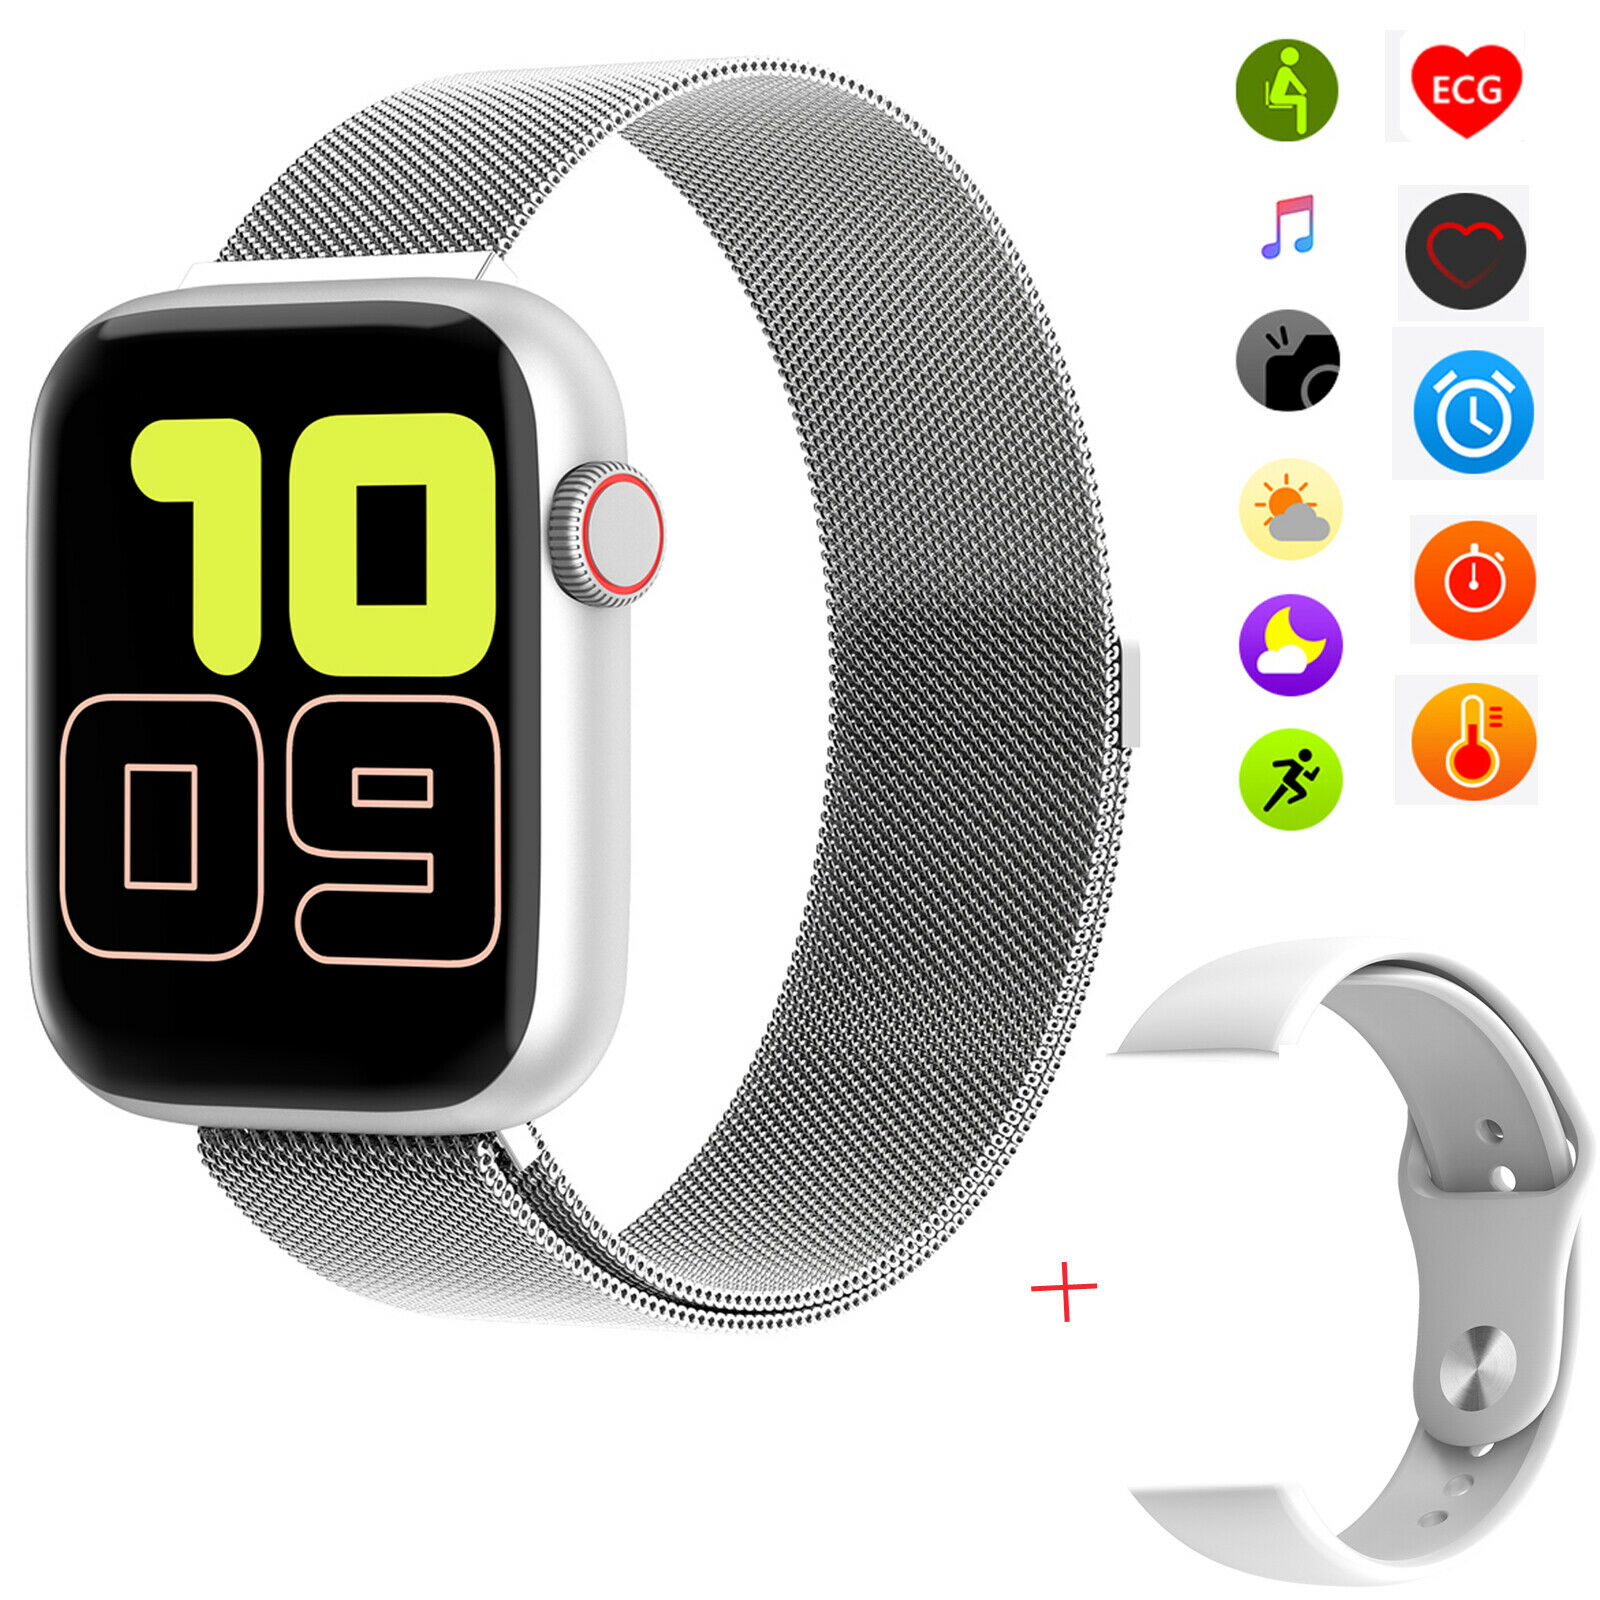 Touch Screen Smart Watch Bluetooth Call Remind For Android Samsung A10 A20 A50 android bluetooth call Featured for remind samsung screen smart touch watch